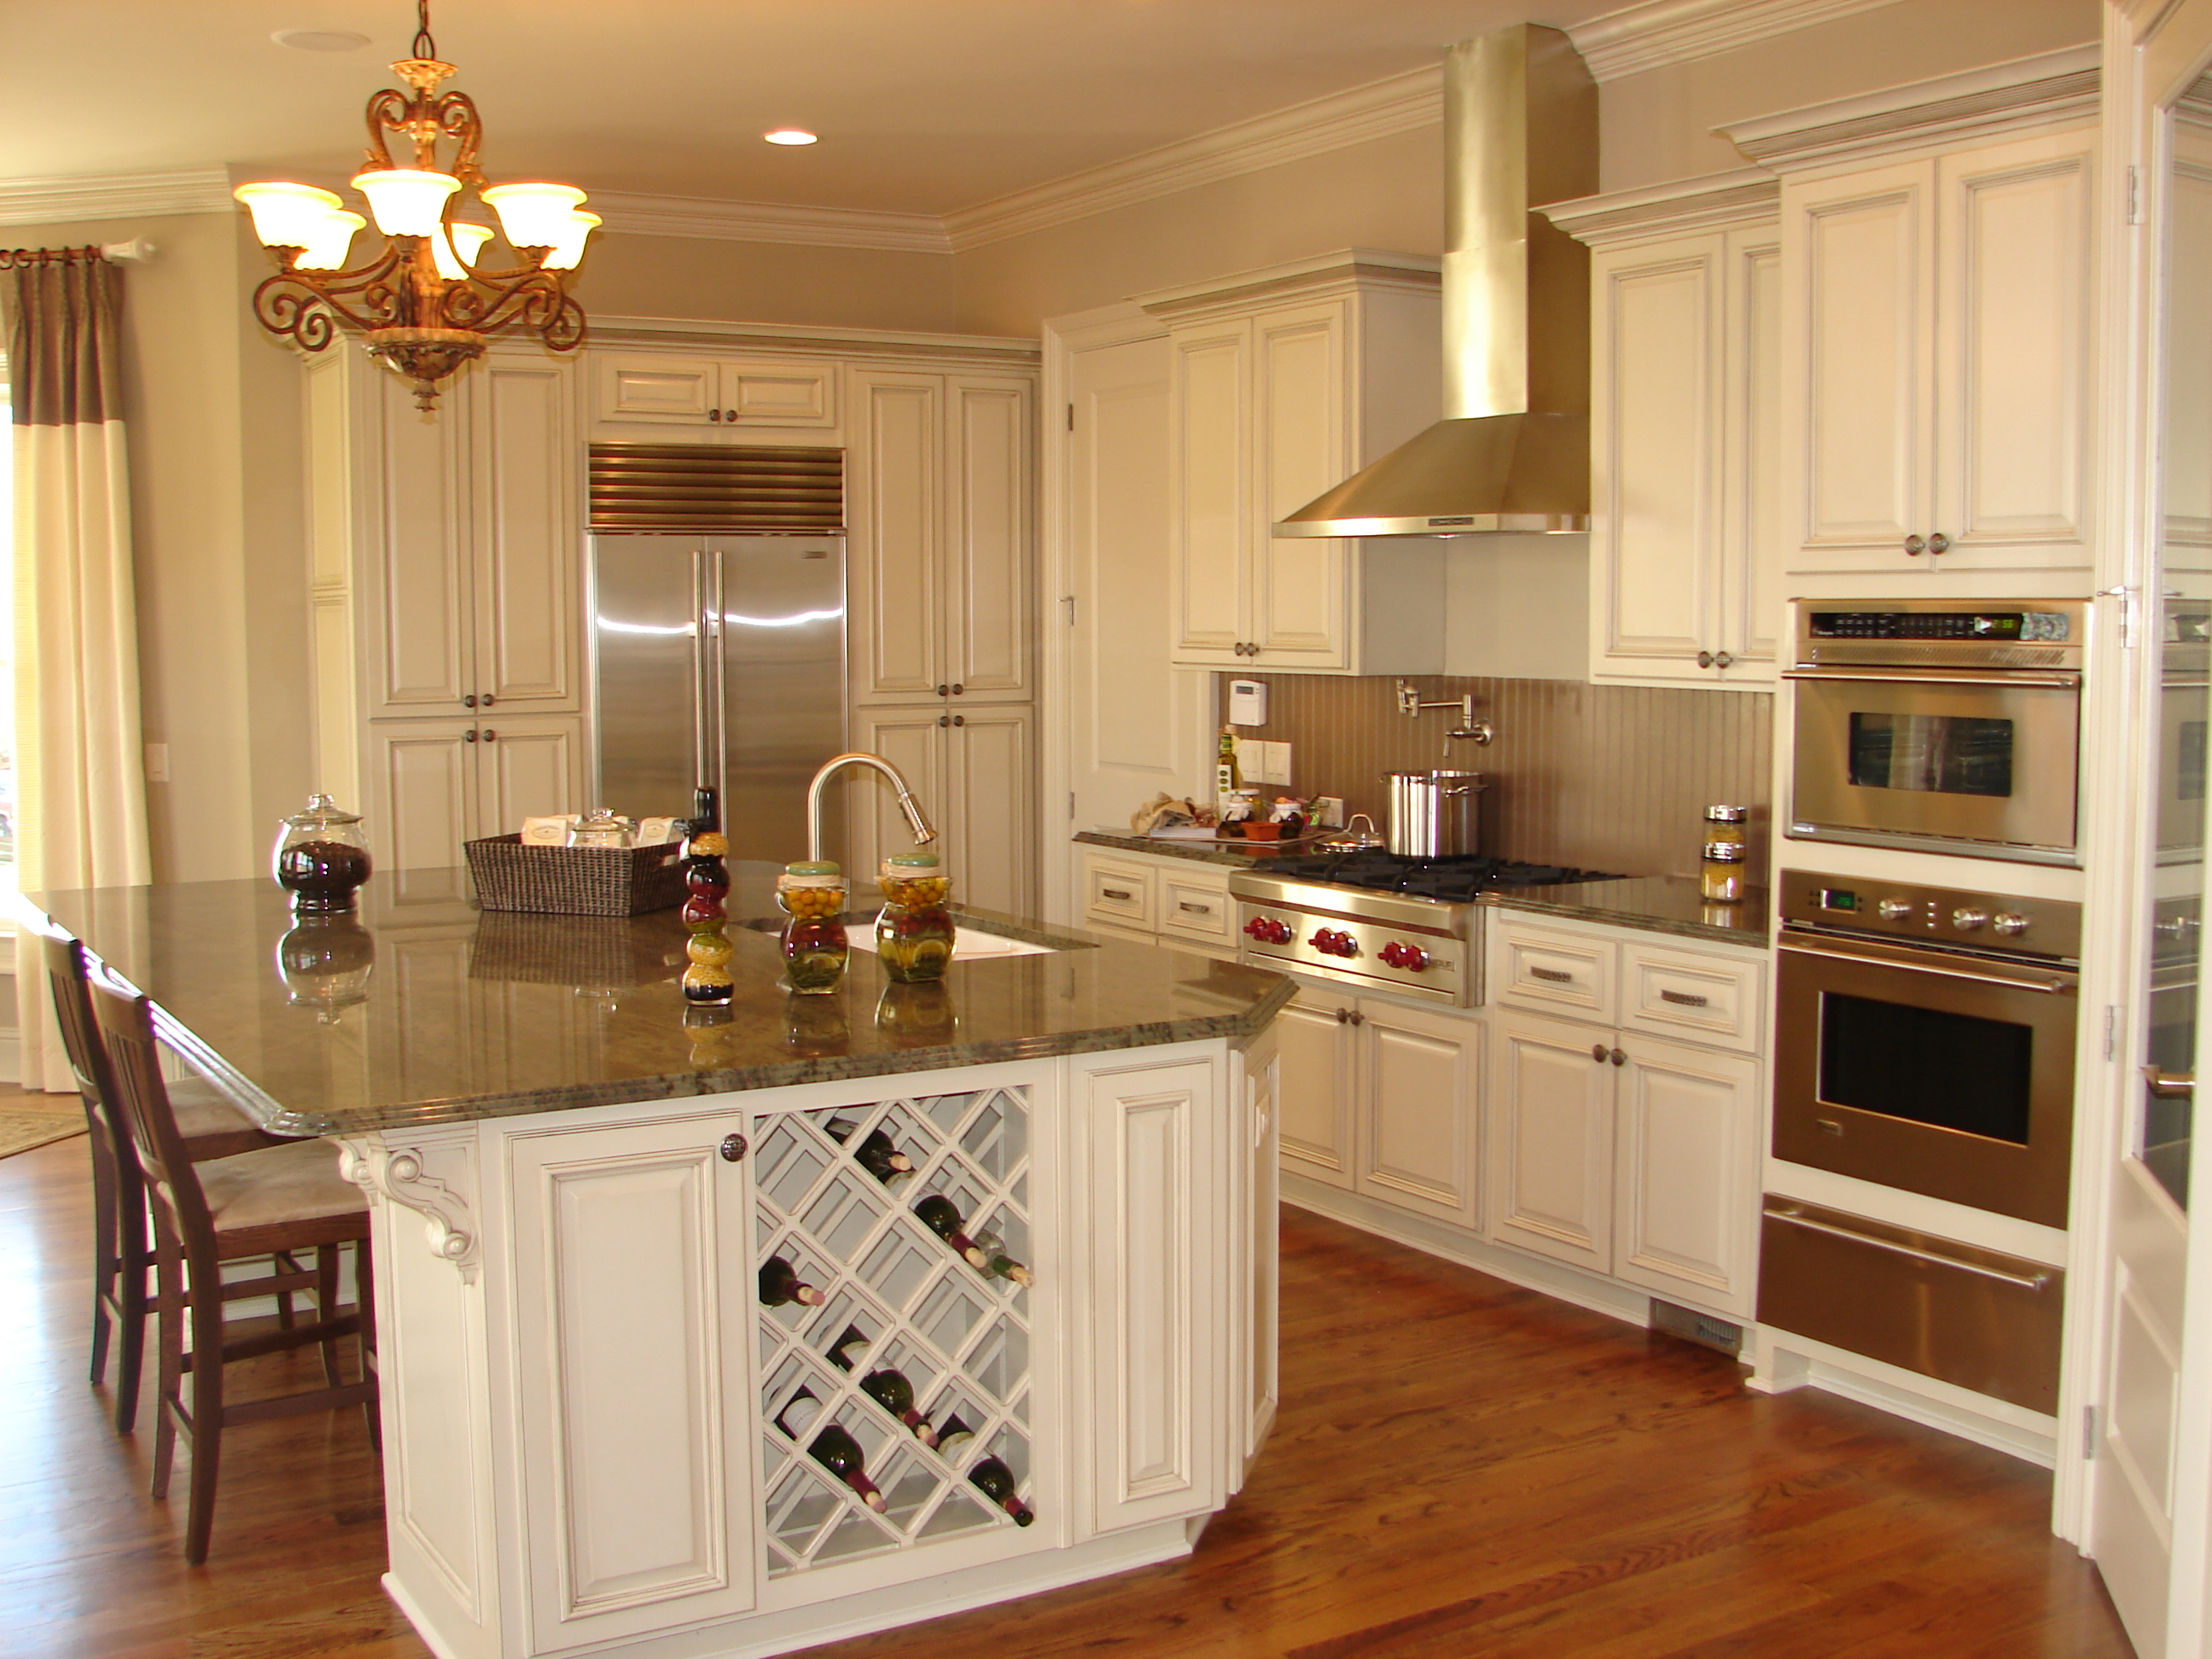 National Kitchen and Bath Association Articles - Peachtree Residential